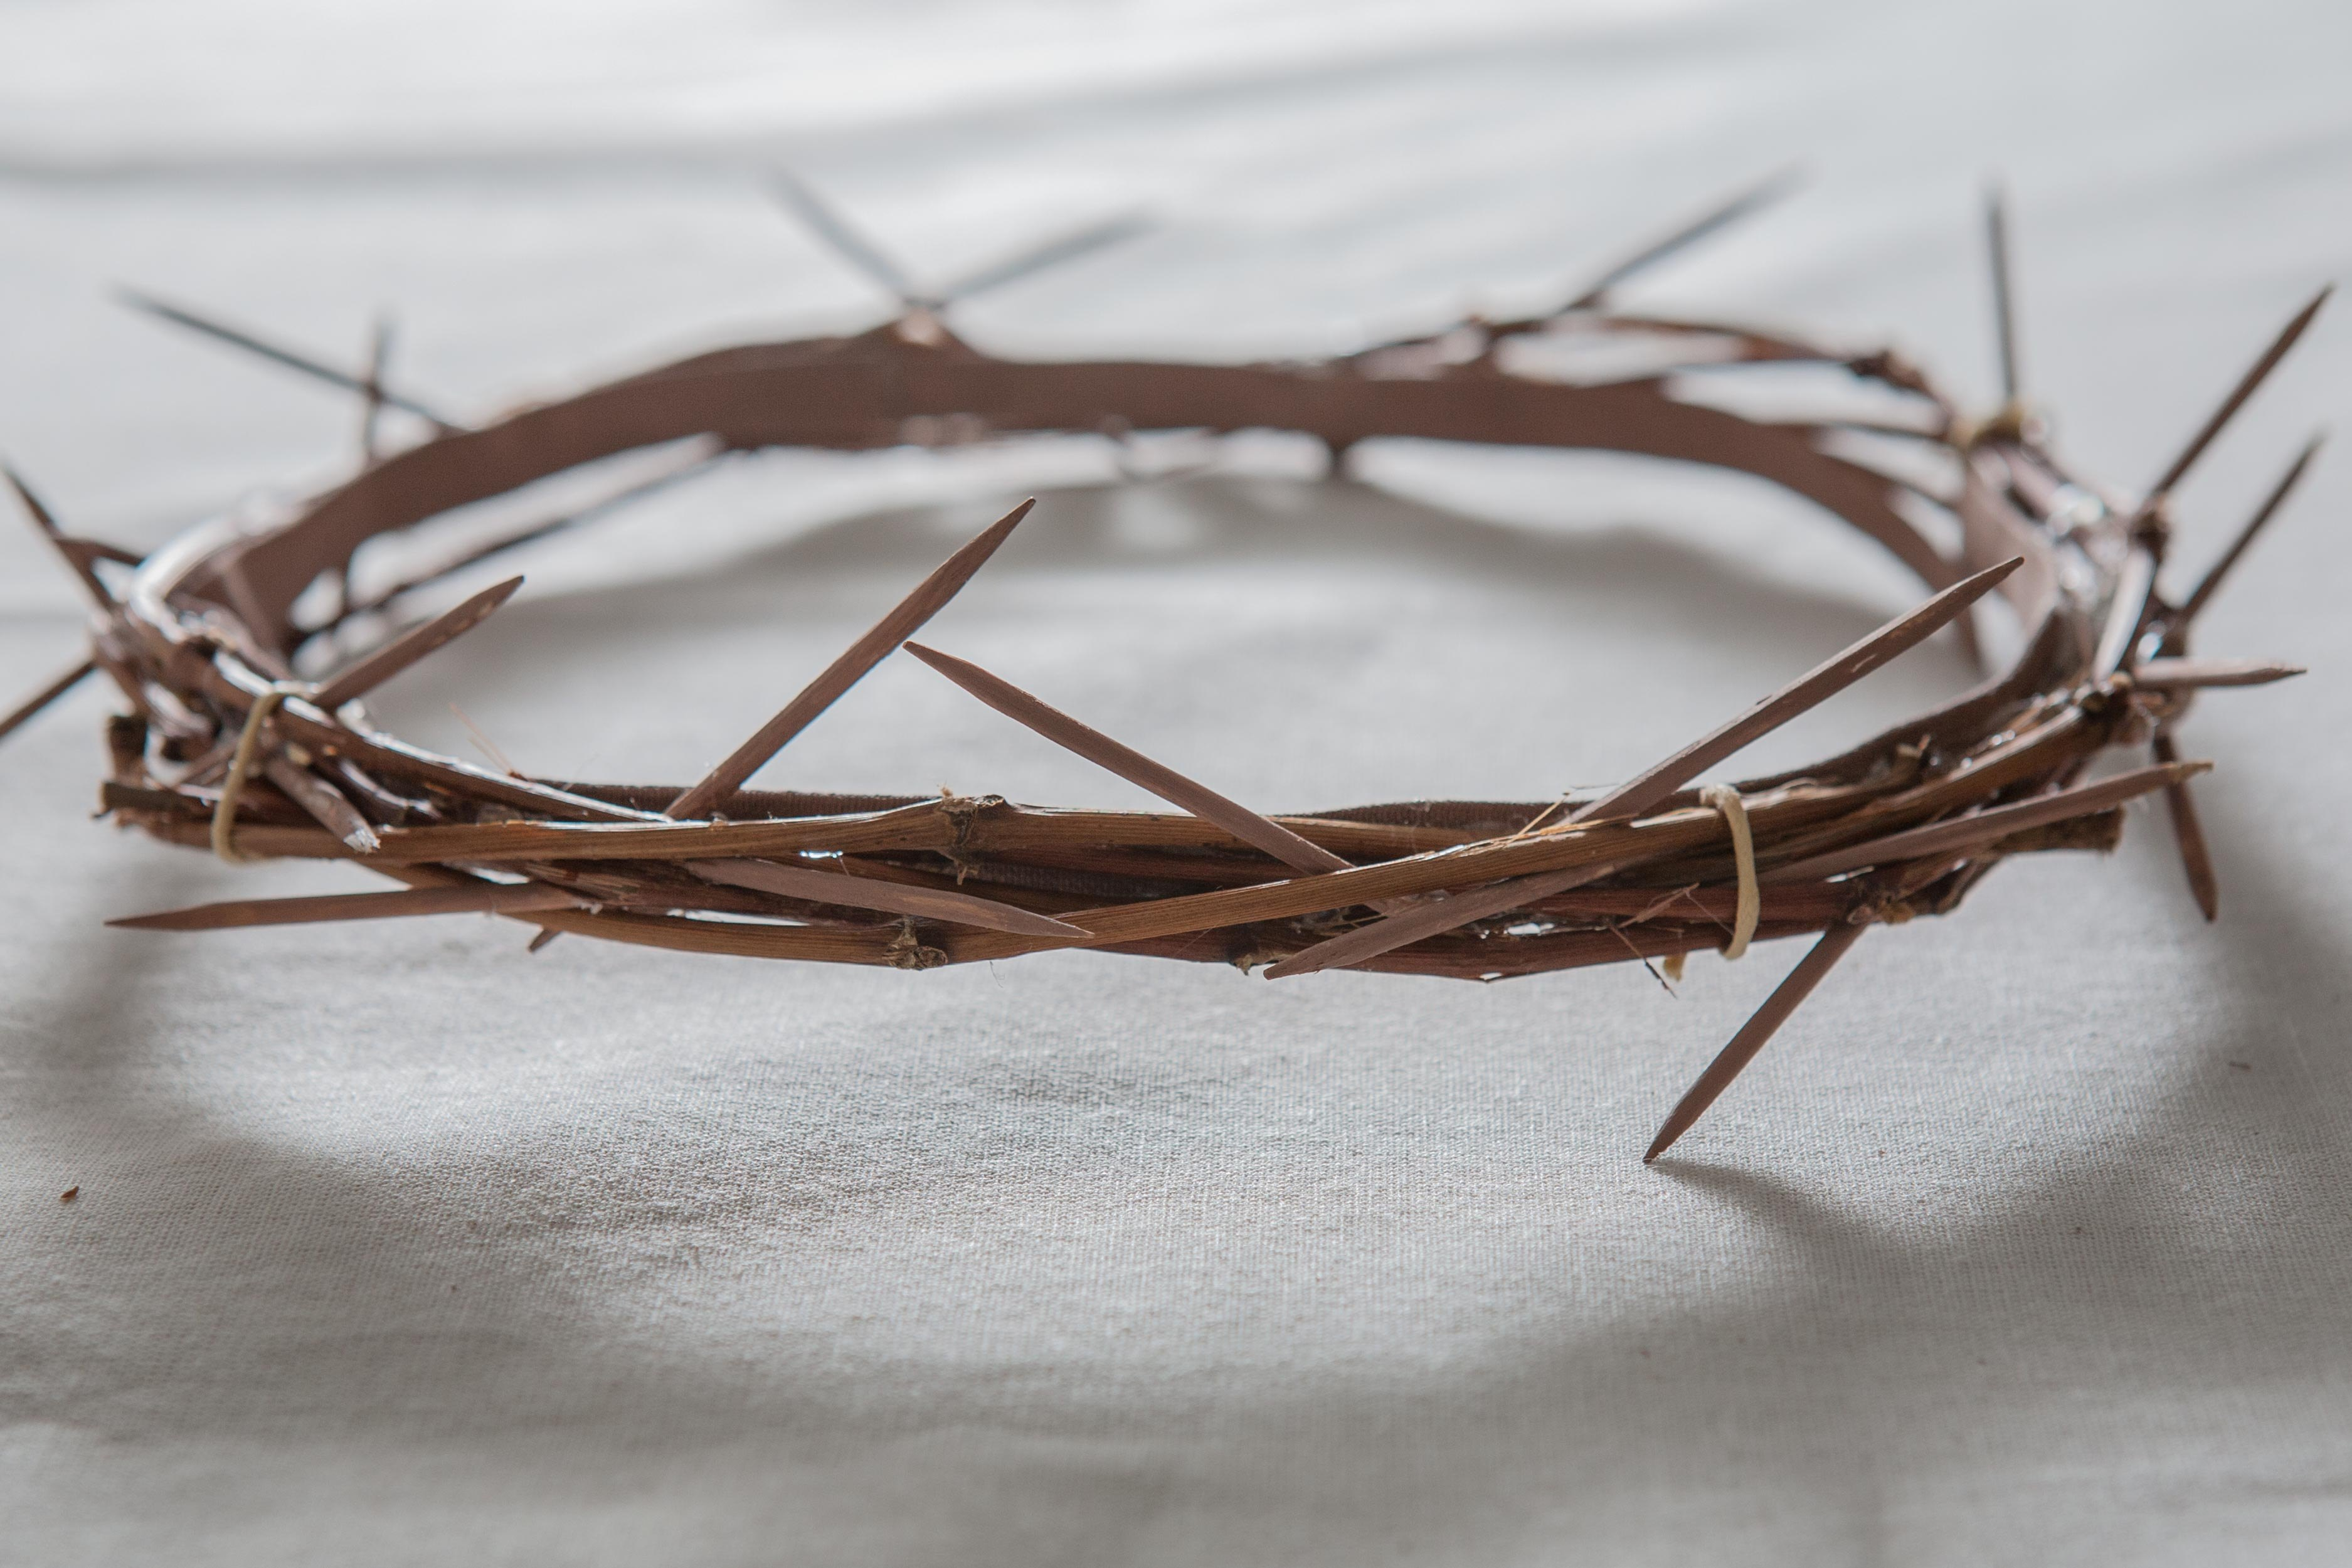 How to Make a Crown of Thorns for an Easter Play | eHow